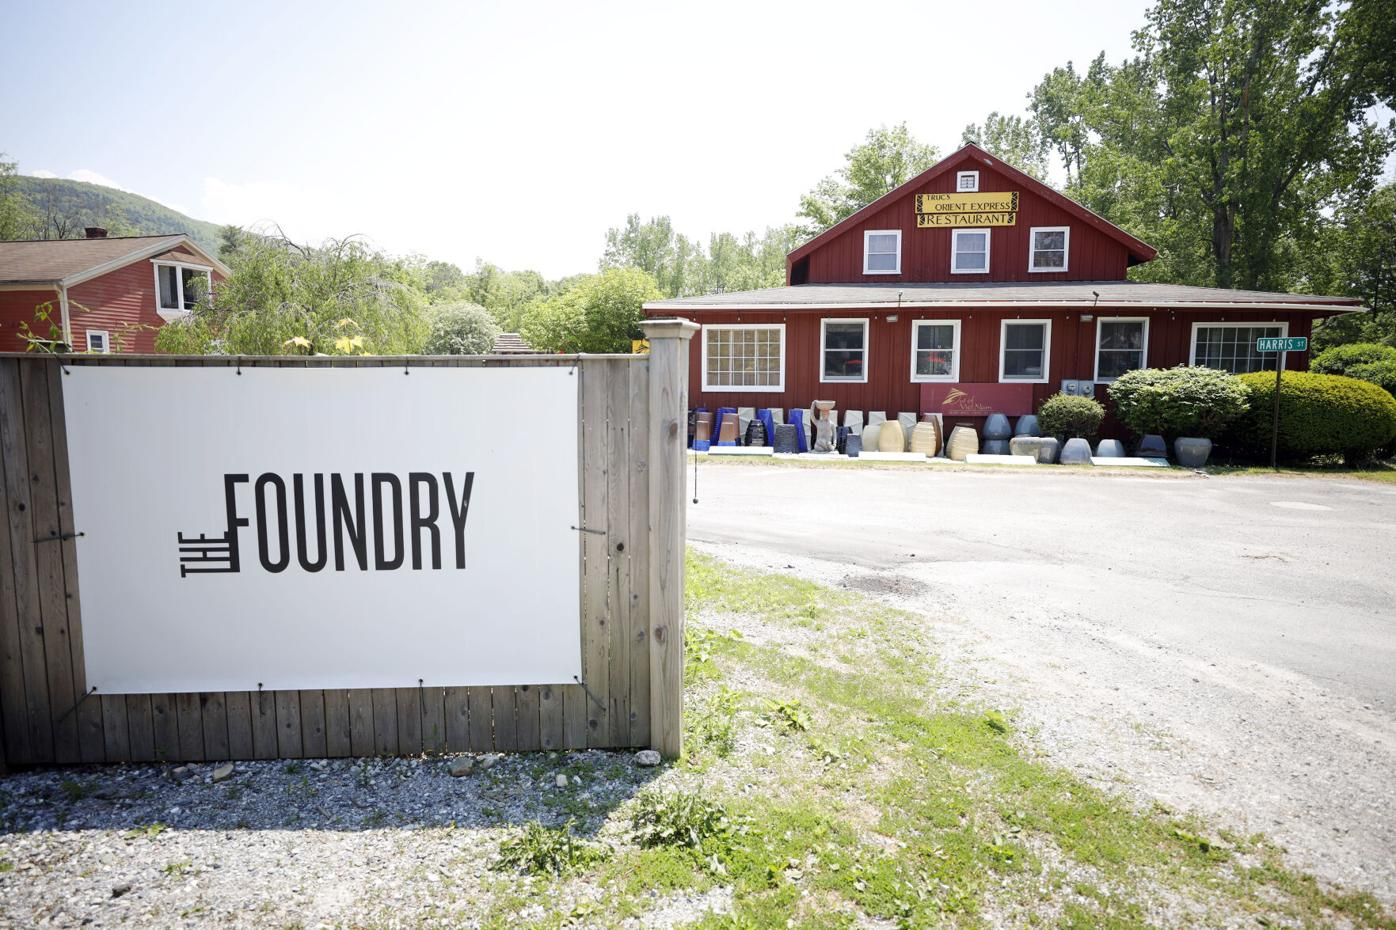 The Foundry sign and Truc Orient Express